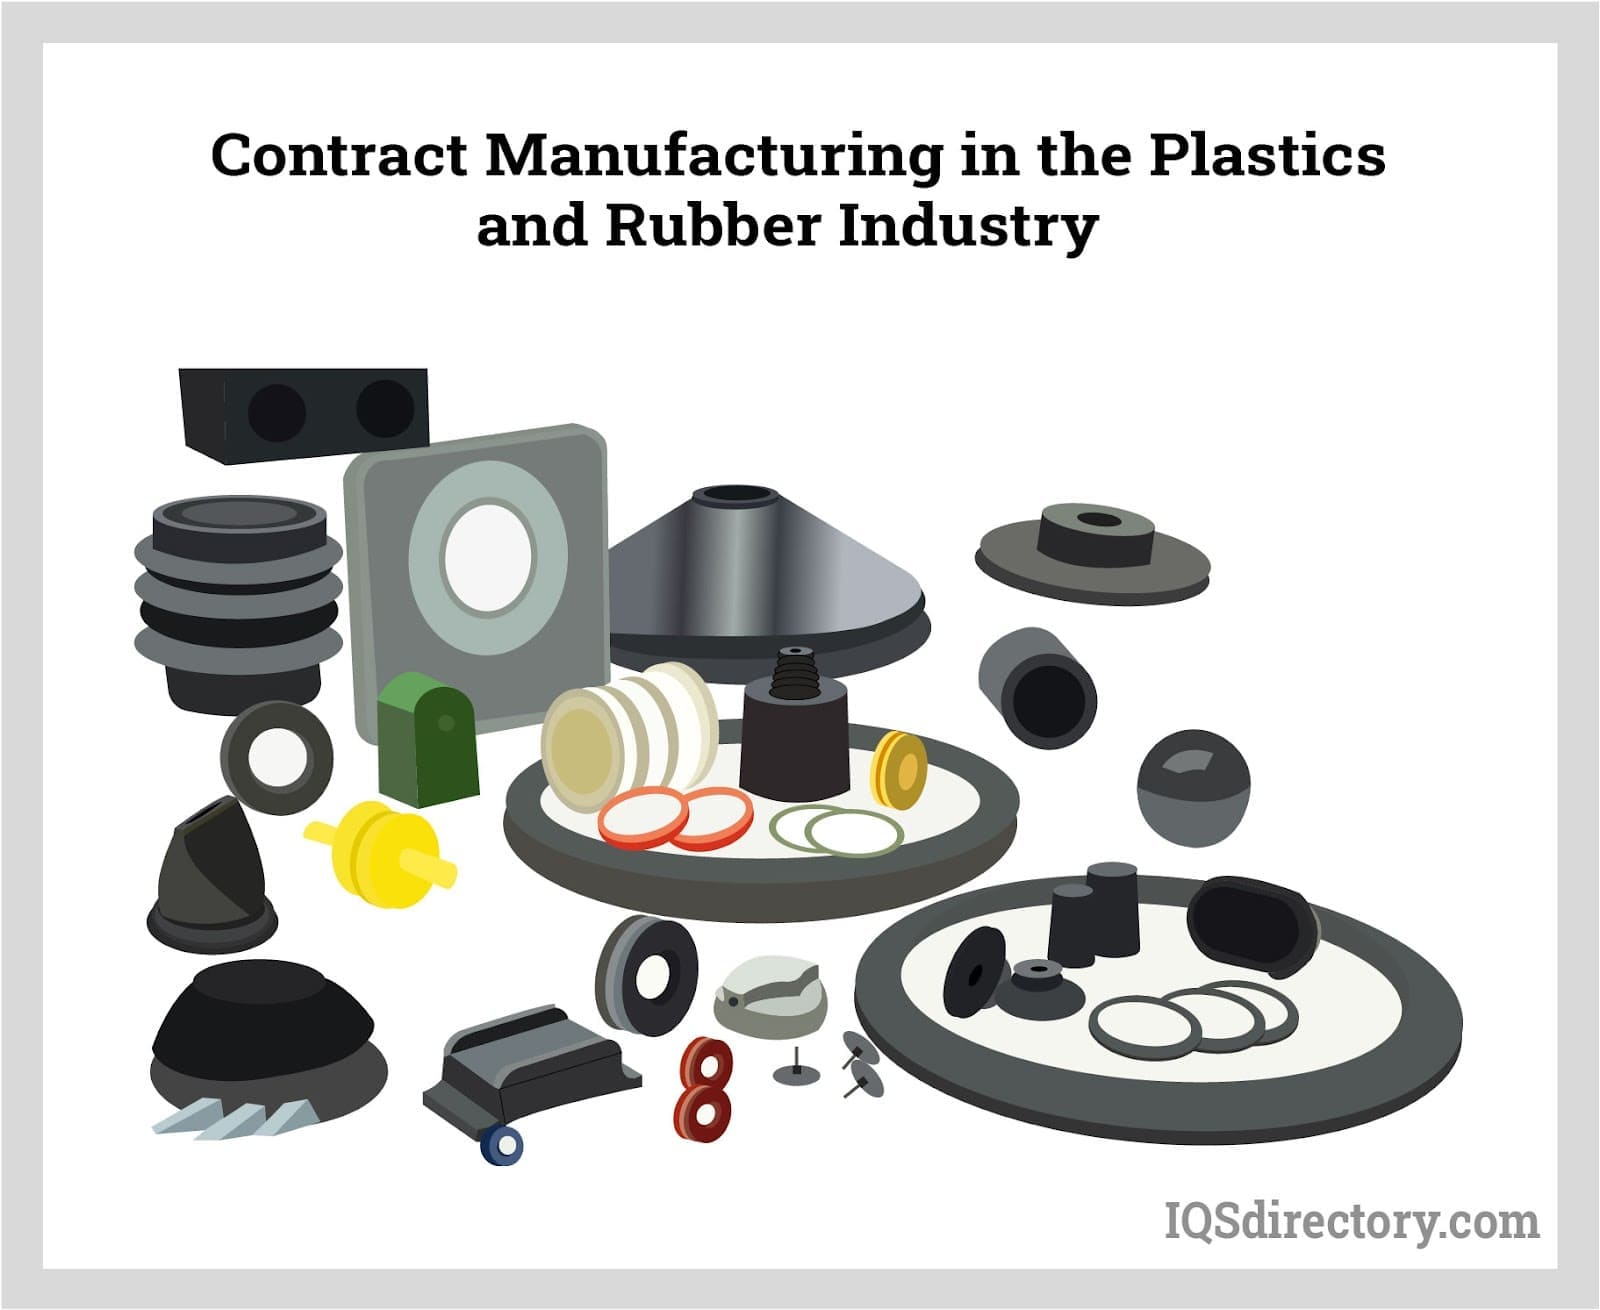 Contract Manufacturing in the Plastics and Rubber Industry